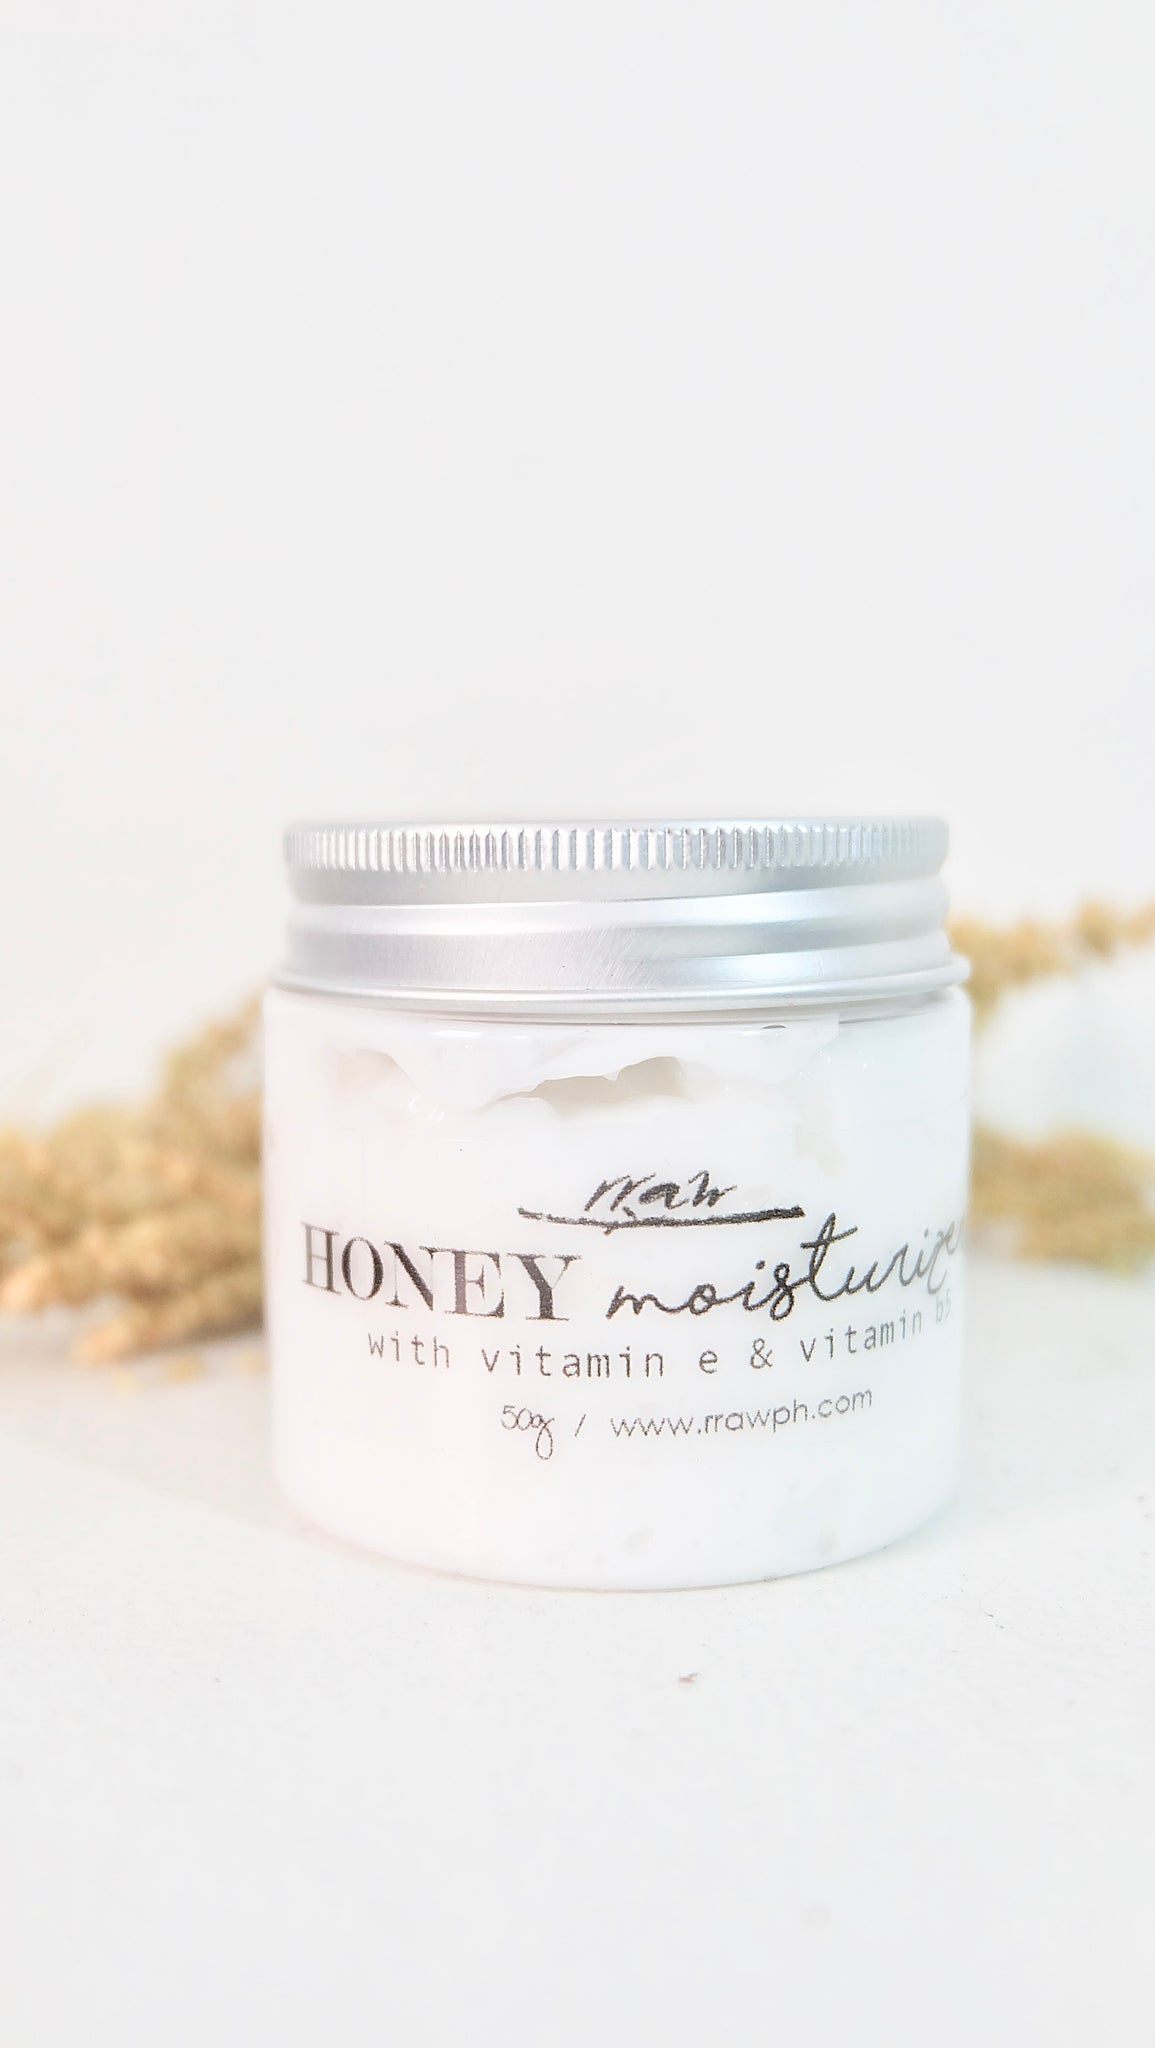 Honey moisturizer